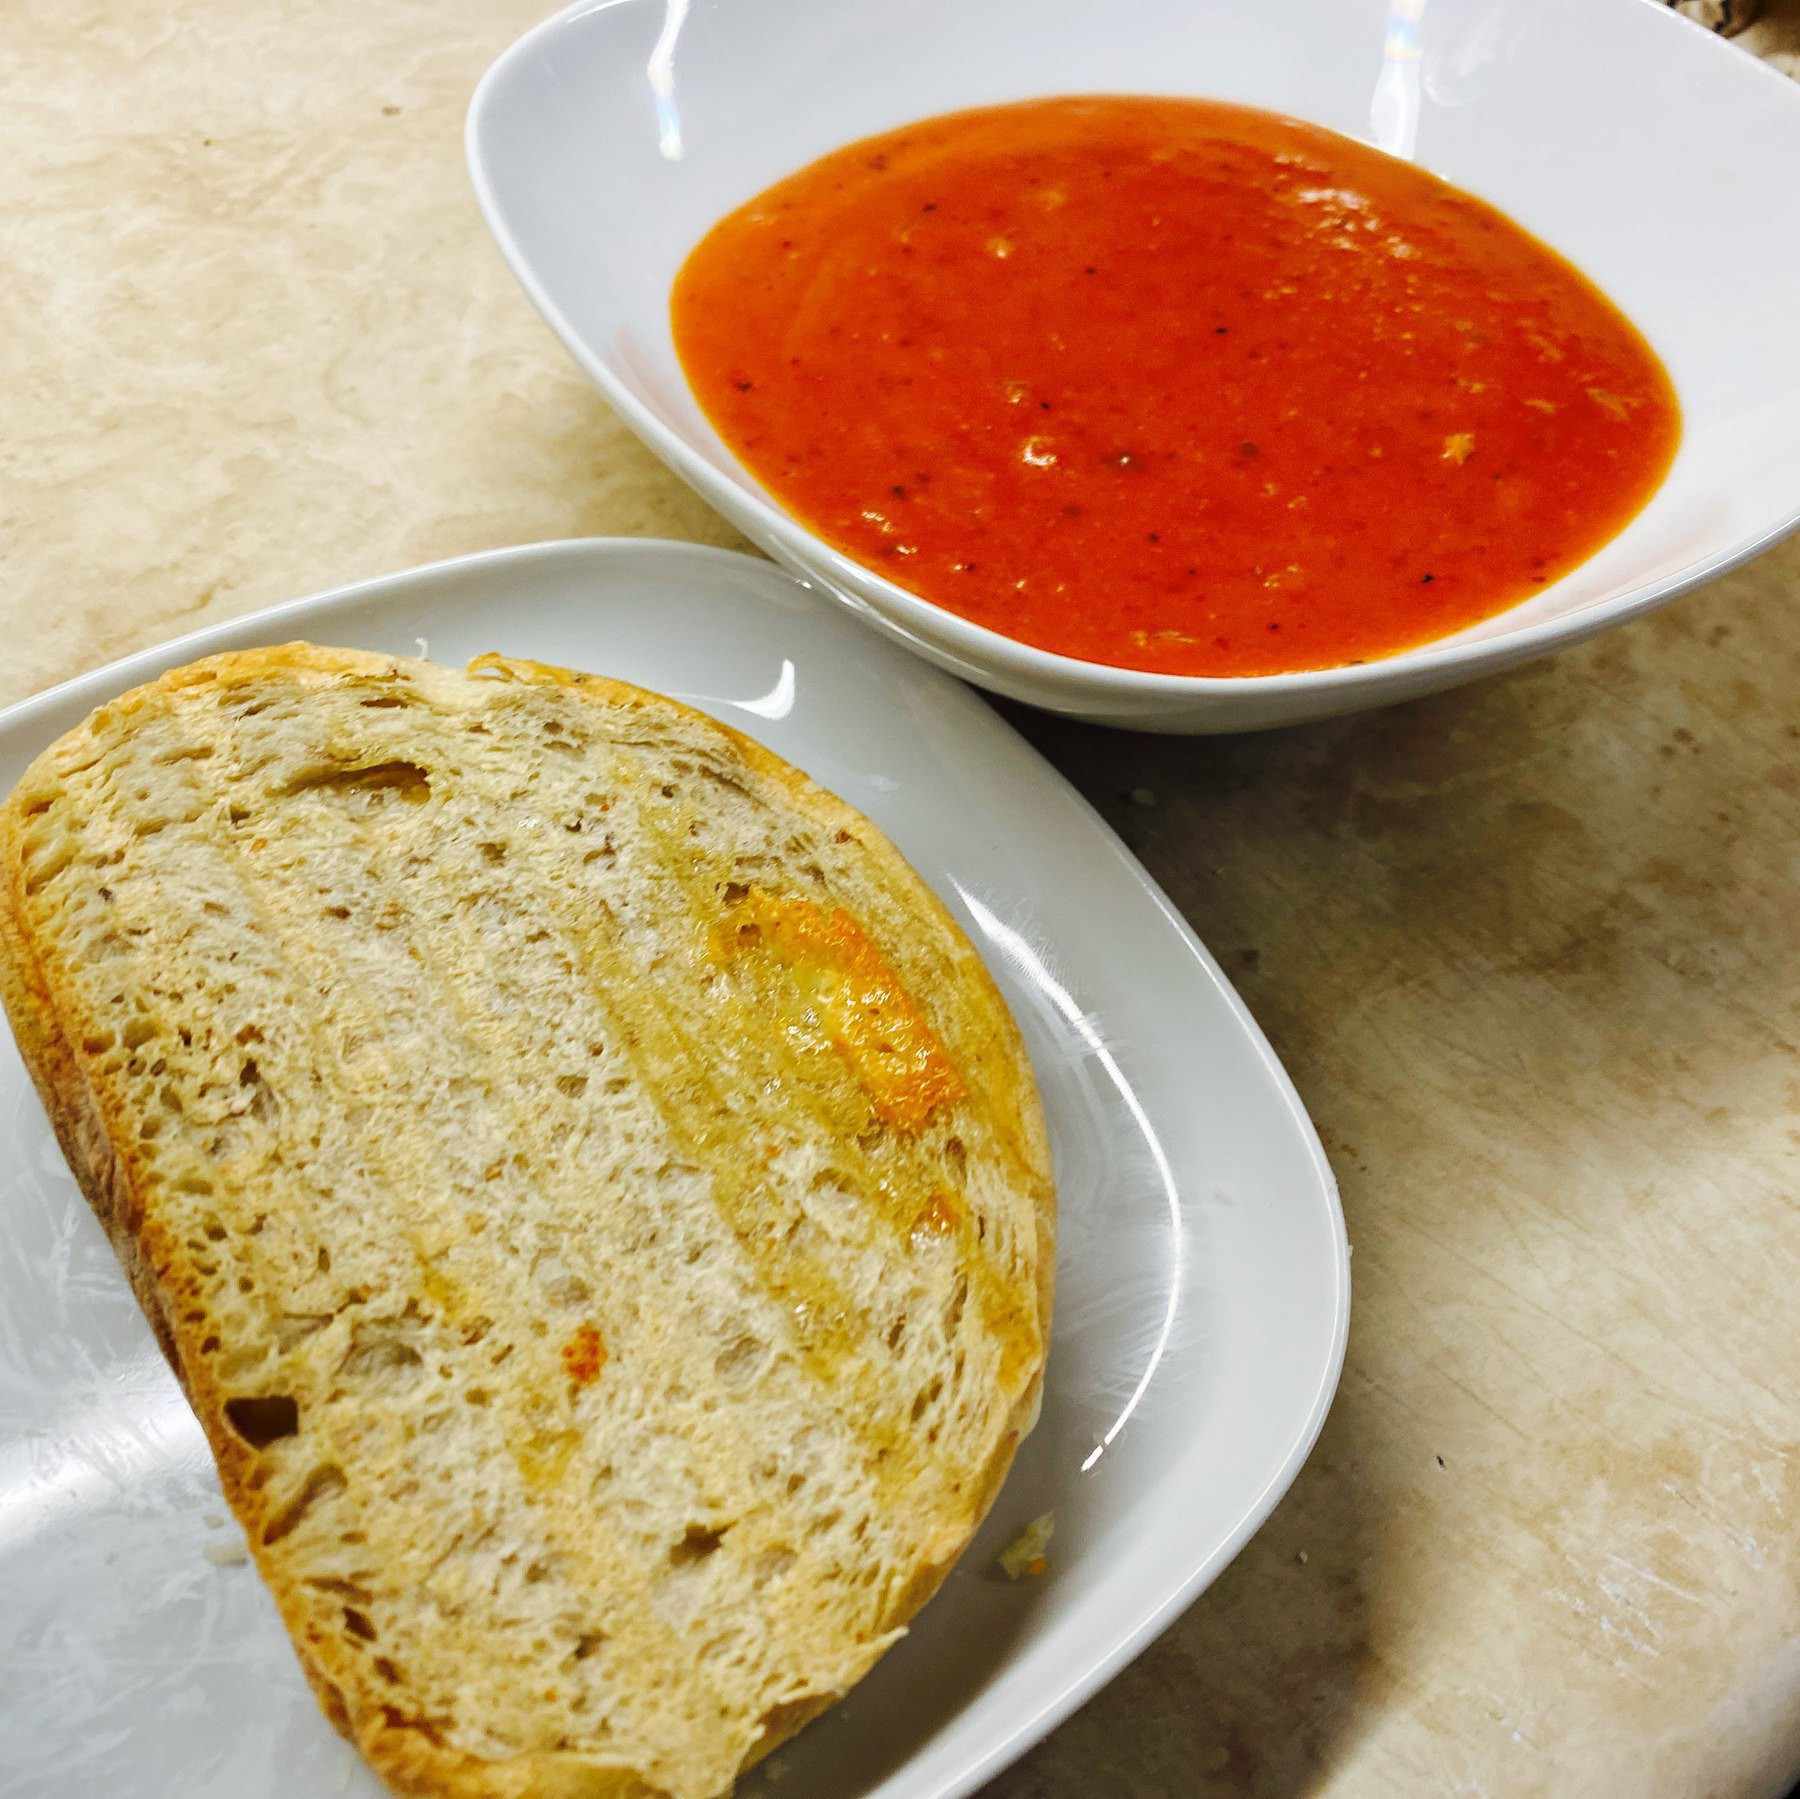 Grilled cheese sandwich on plate and bowl of tomato soup.